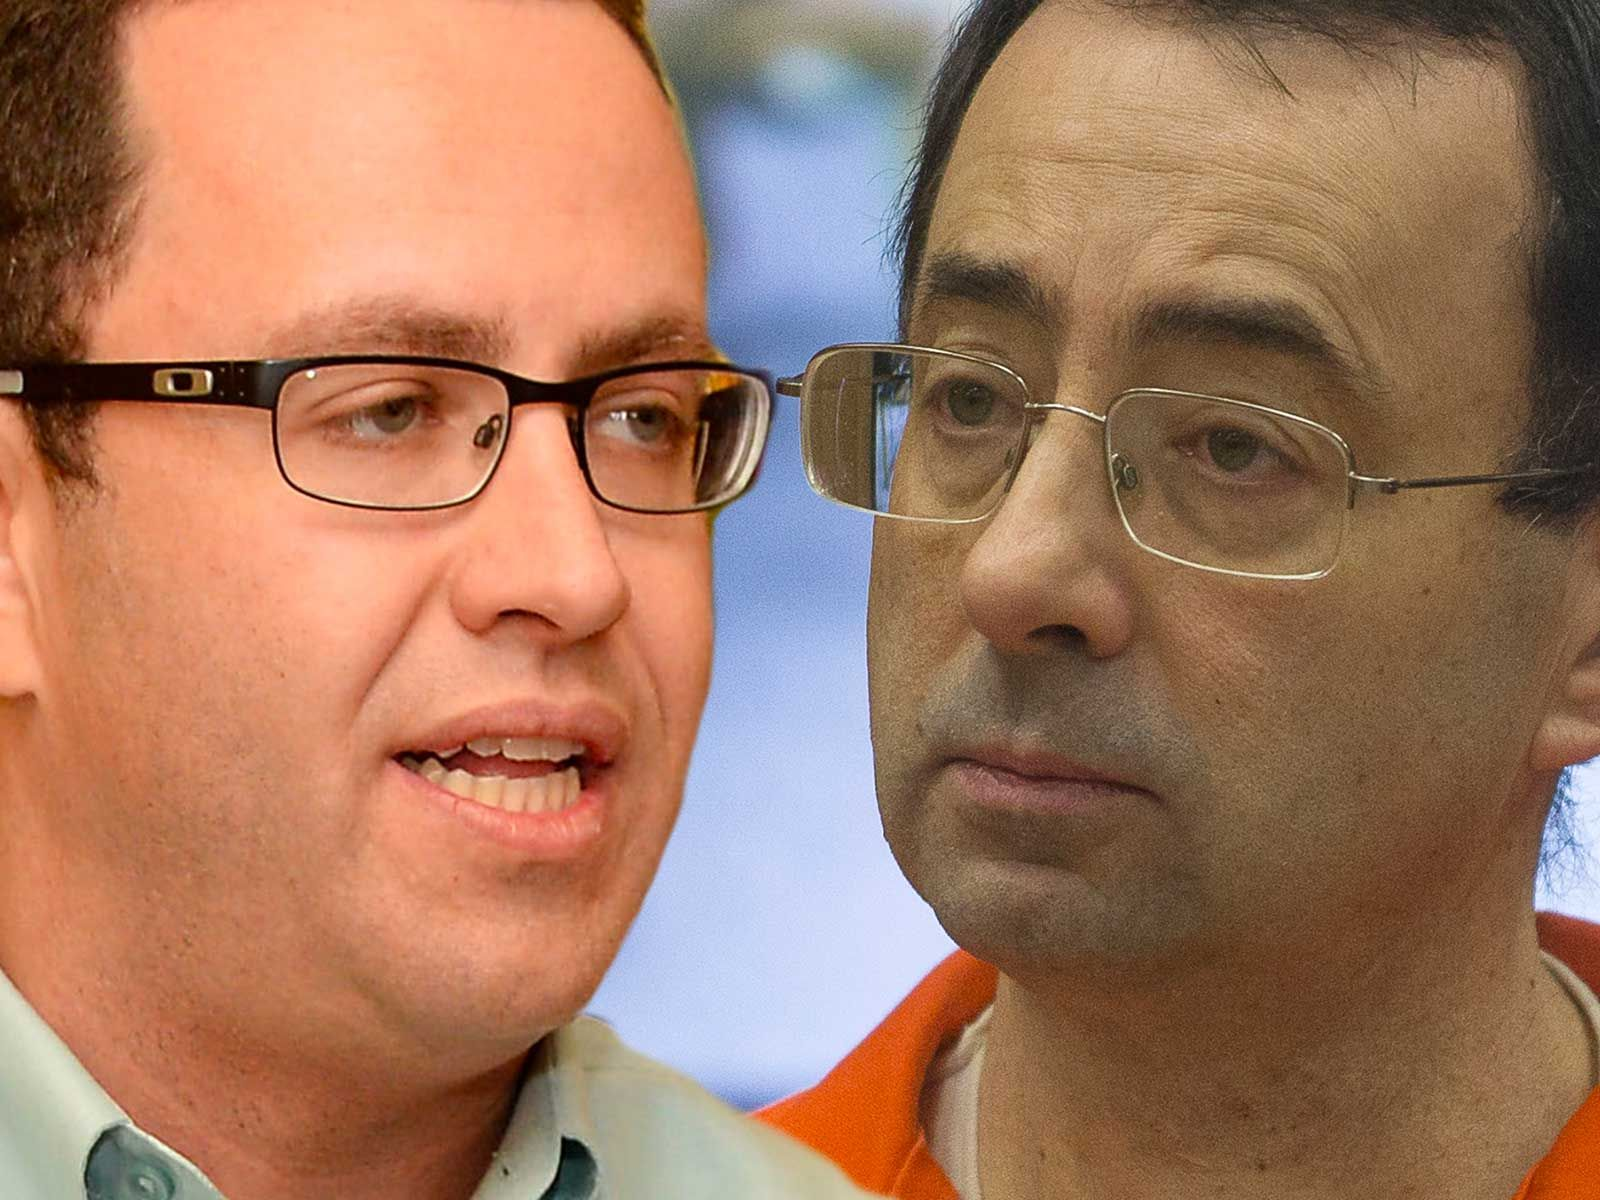 Jared Fogle: Larry Nassar Is Way Worse Than Me